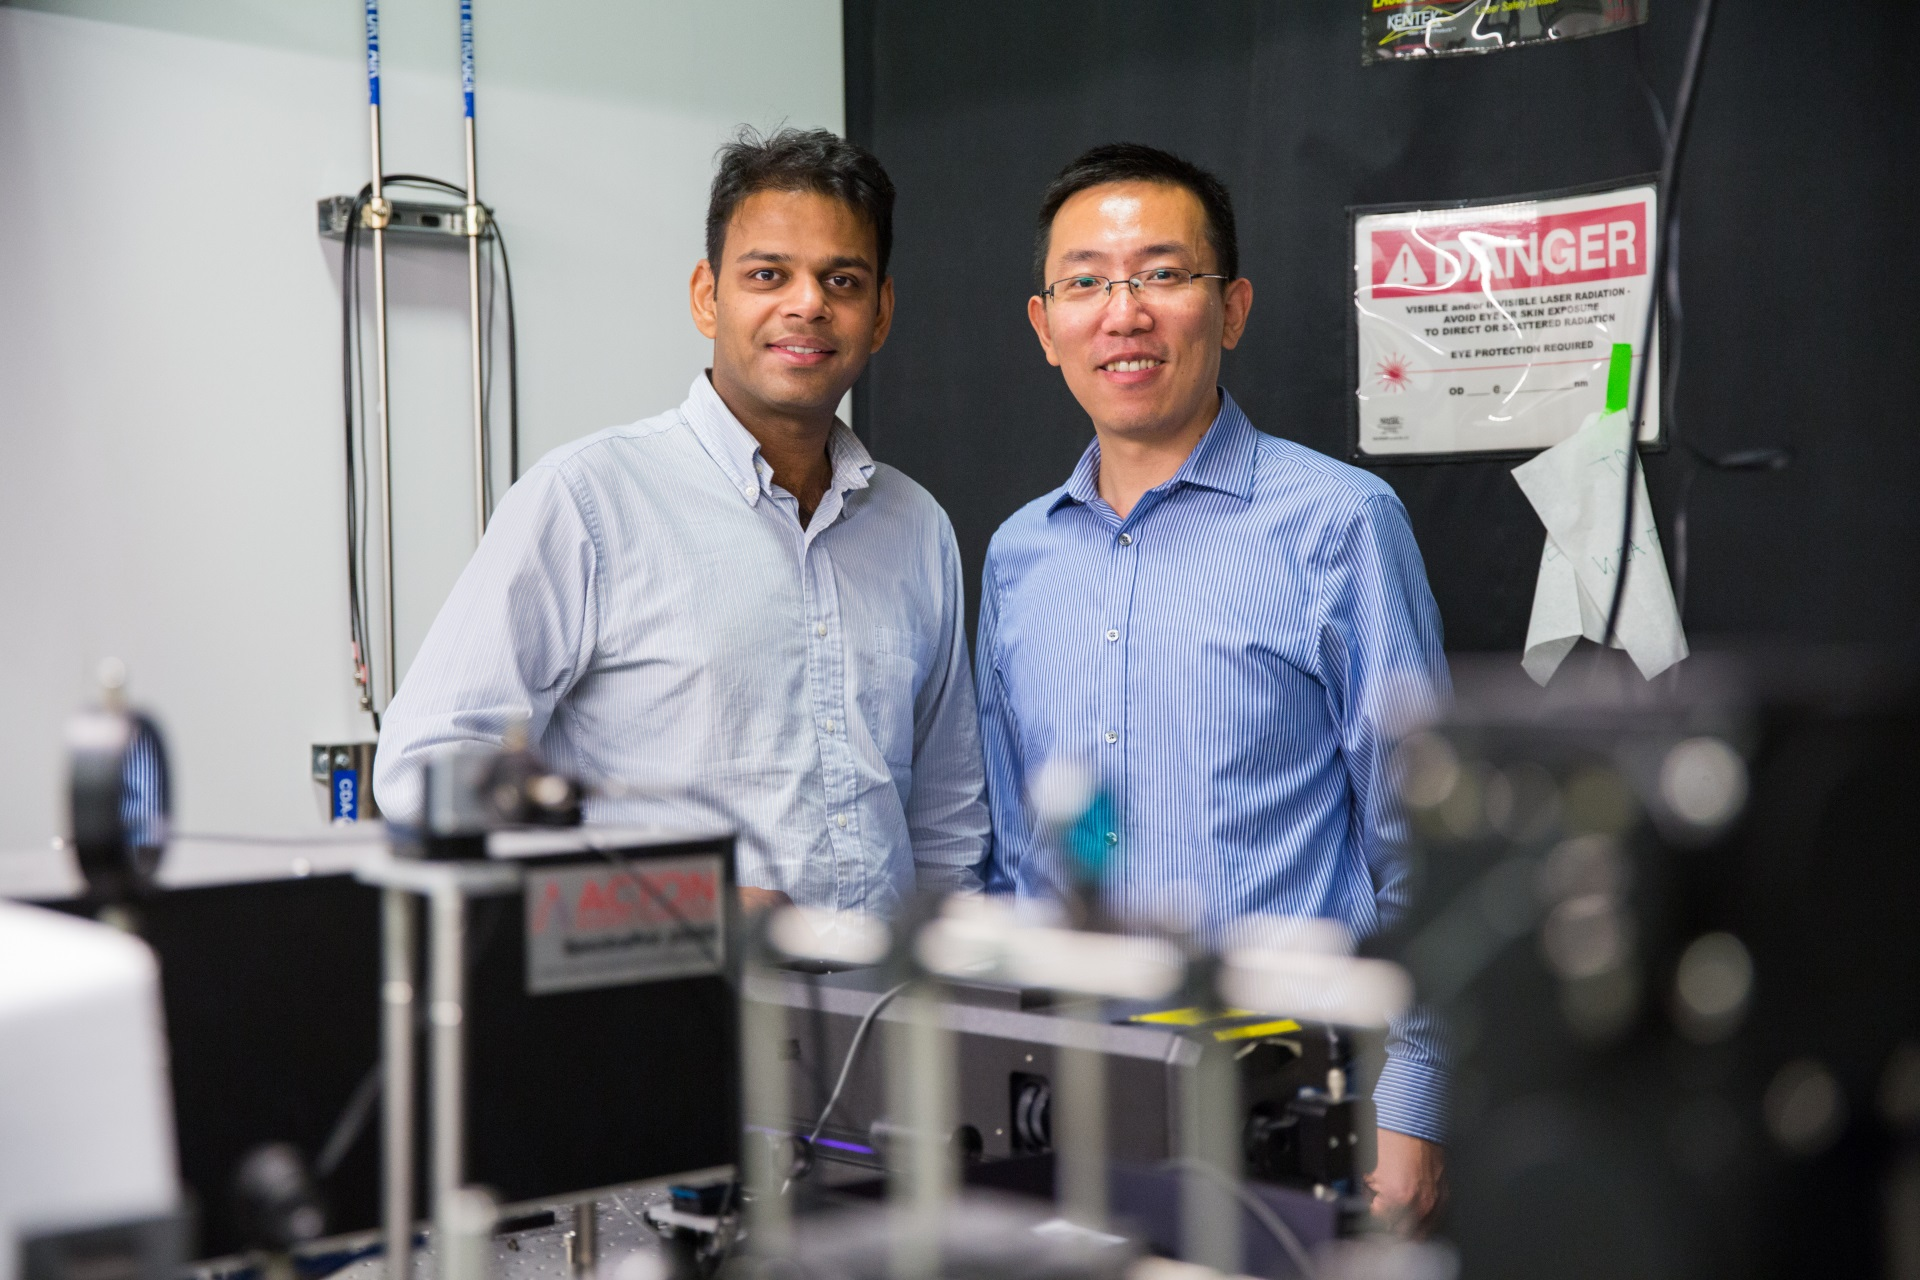 A pair of studies published in Science, led by Liang Feng and Ritesh Agarwal, describe novel ways of increasing information density in optical communication networks.